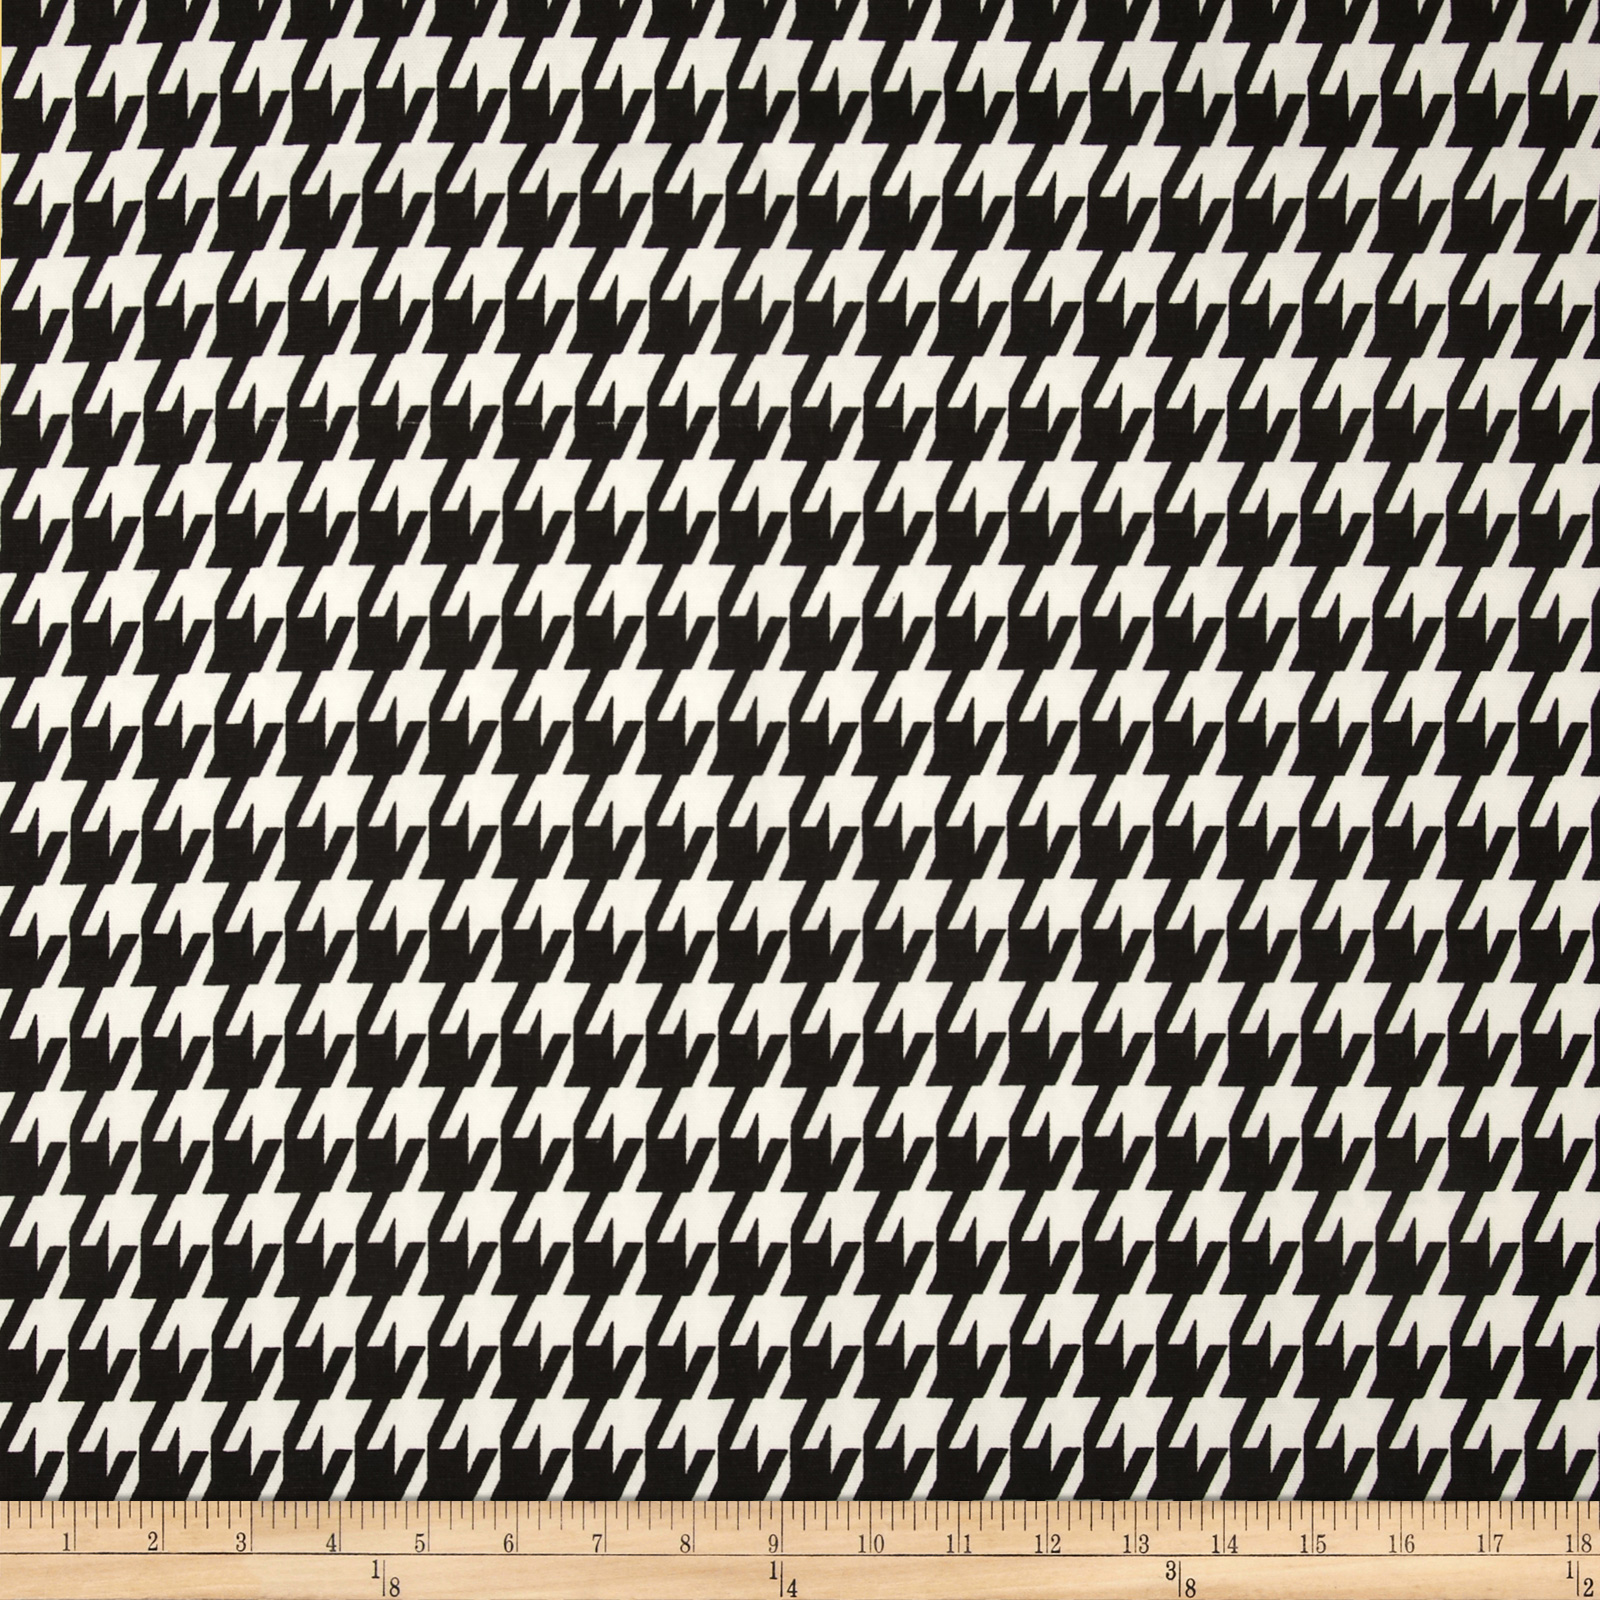 houndstooth sofa fabric clearance portsmouth premier prints arrow black discount designer